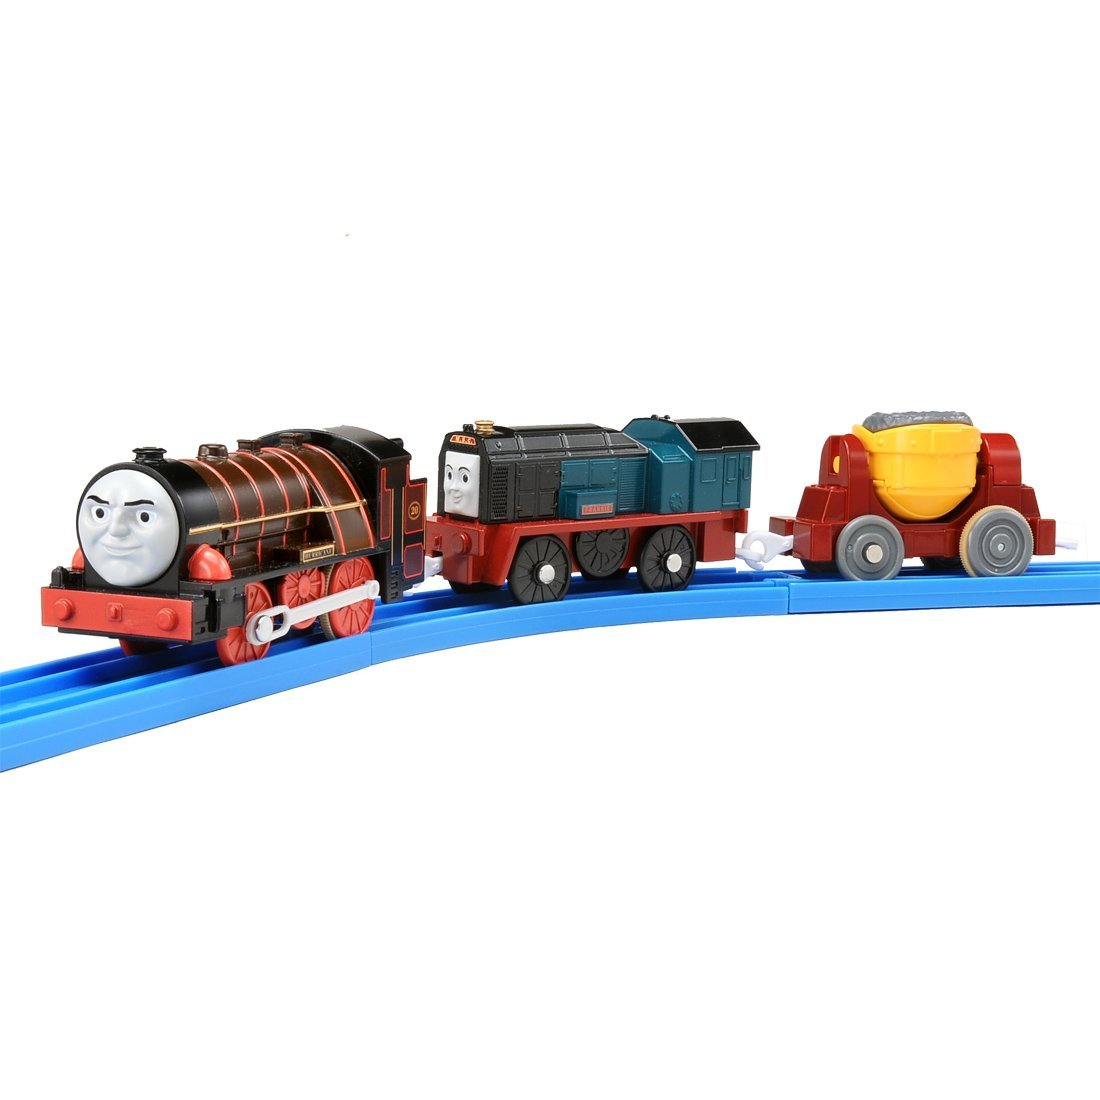 Hurricane And Frankie Thomas And Friends Trackmaster